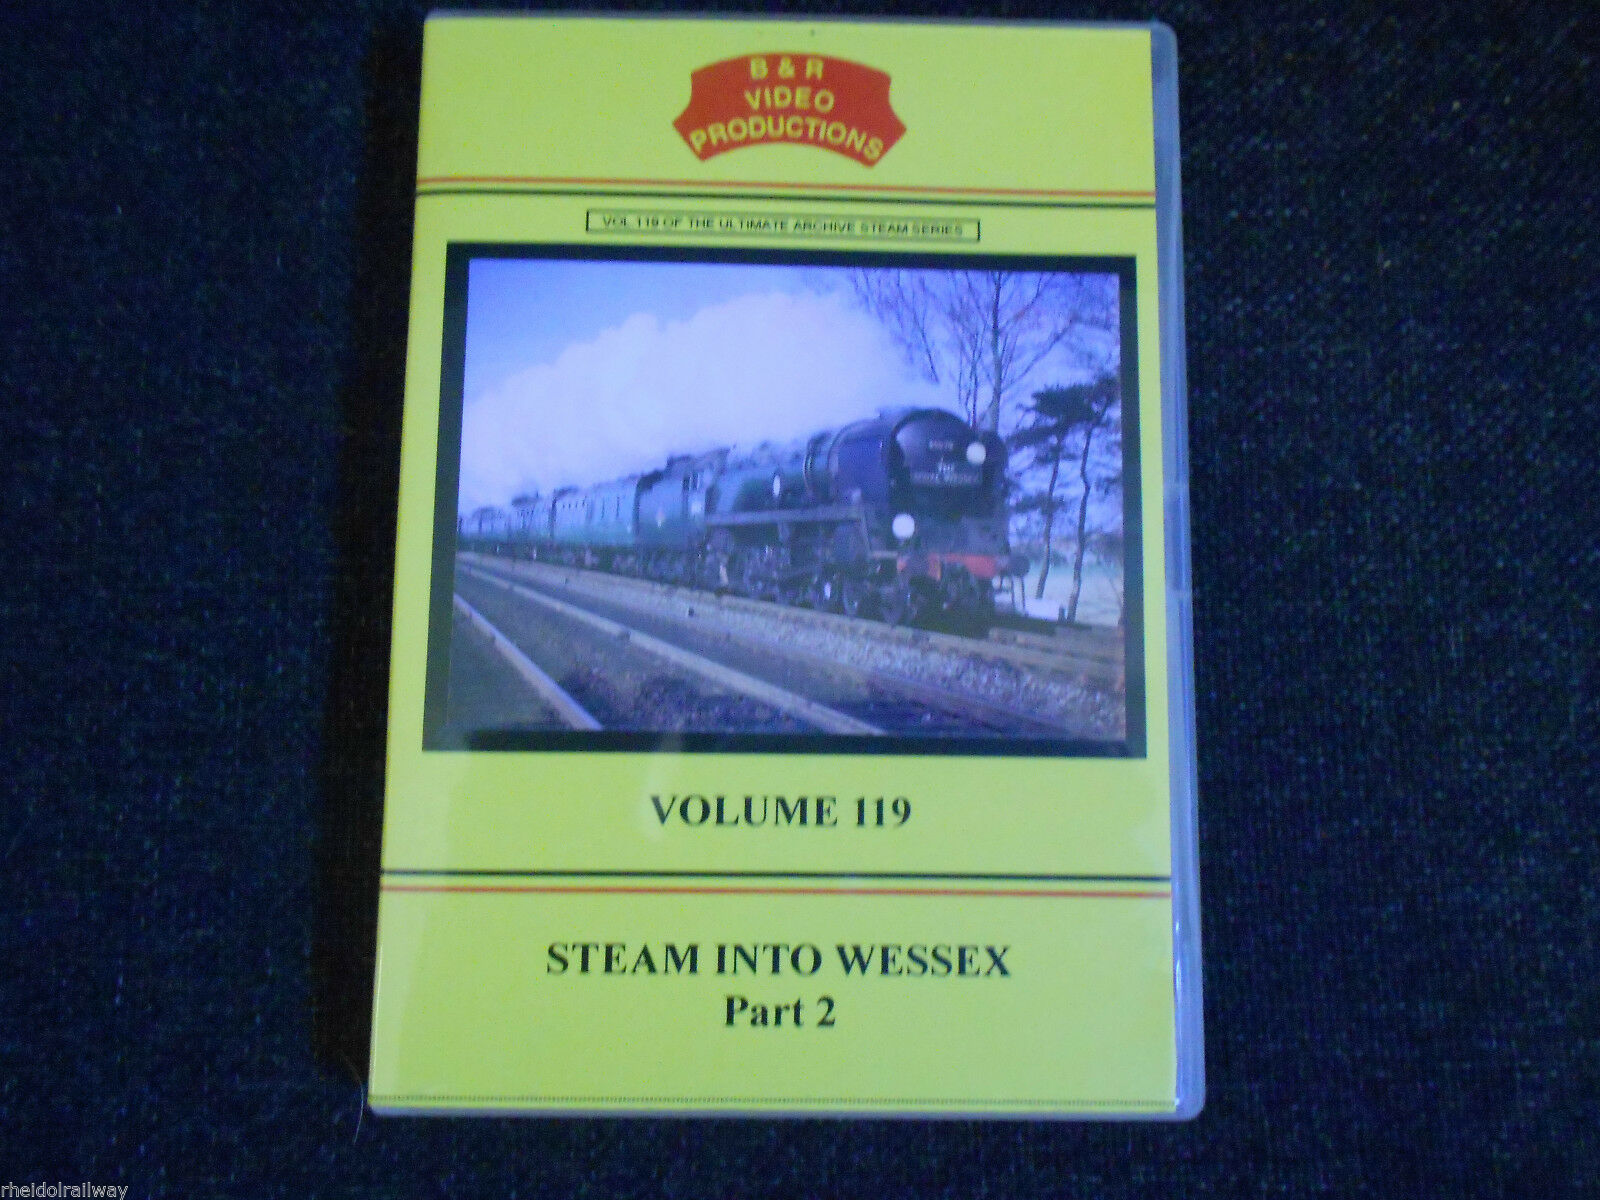 Waterloo, Weymouth, Templecombe, Bath, Steam Into Wessex Pt 2 B&R Vol 119 DVD - The Vale of Rheidol Railway